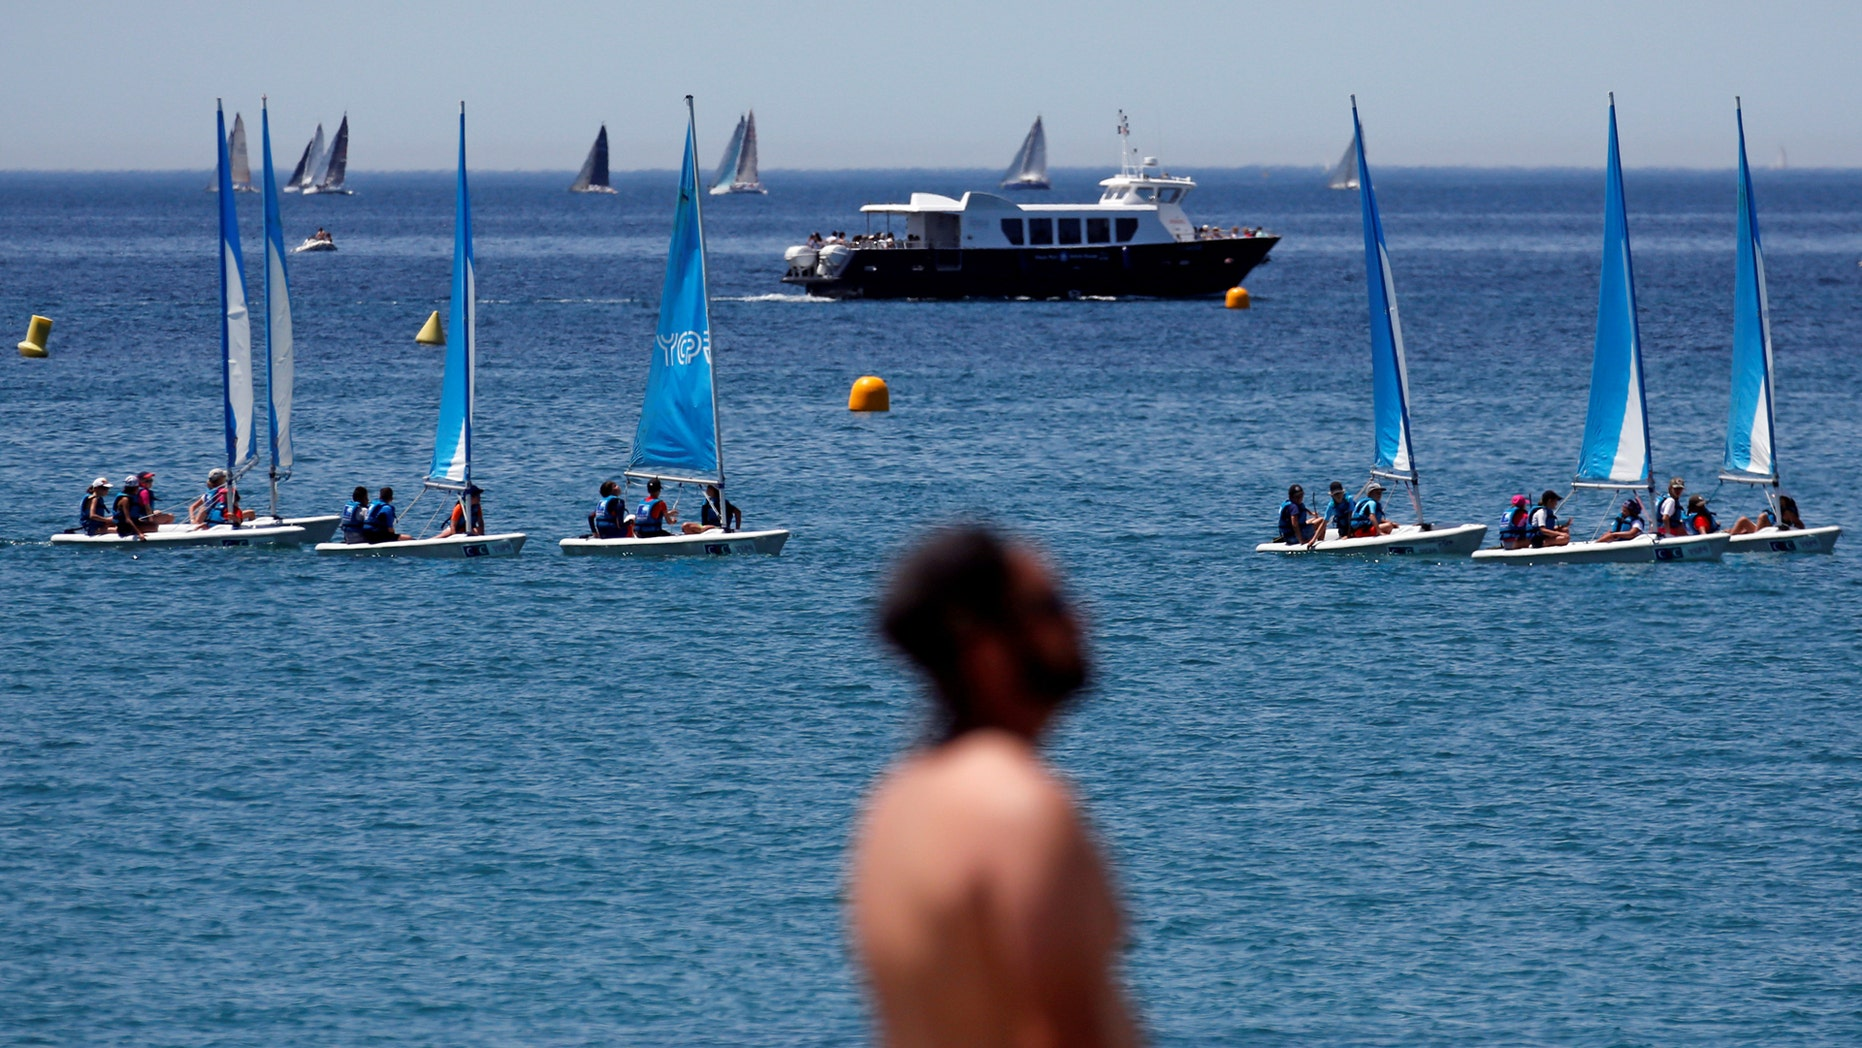 File photo: Boats sail off from Marseille's harbour, France, July 6, 2017. (REUTERS/Jean-Paul Pelissier)